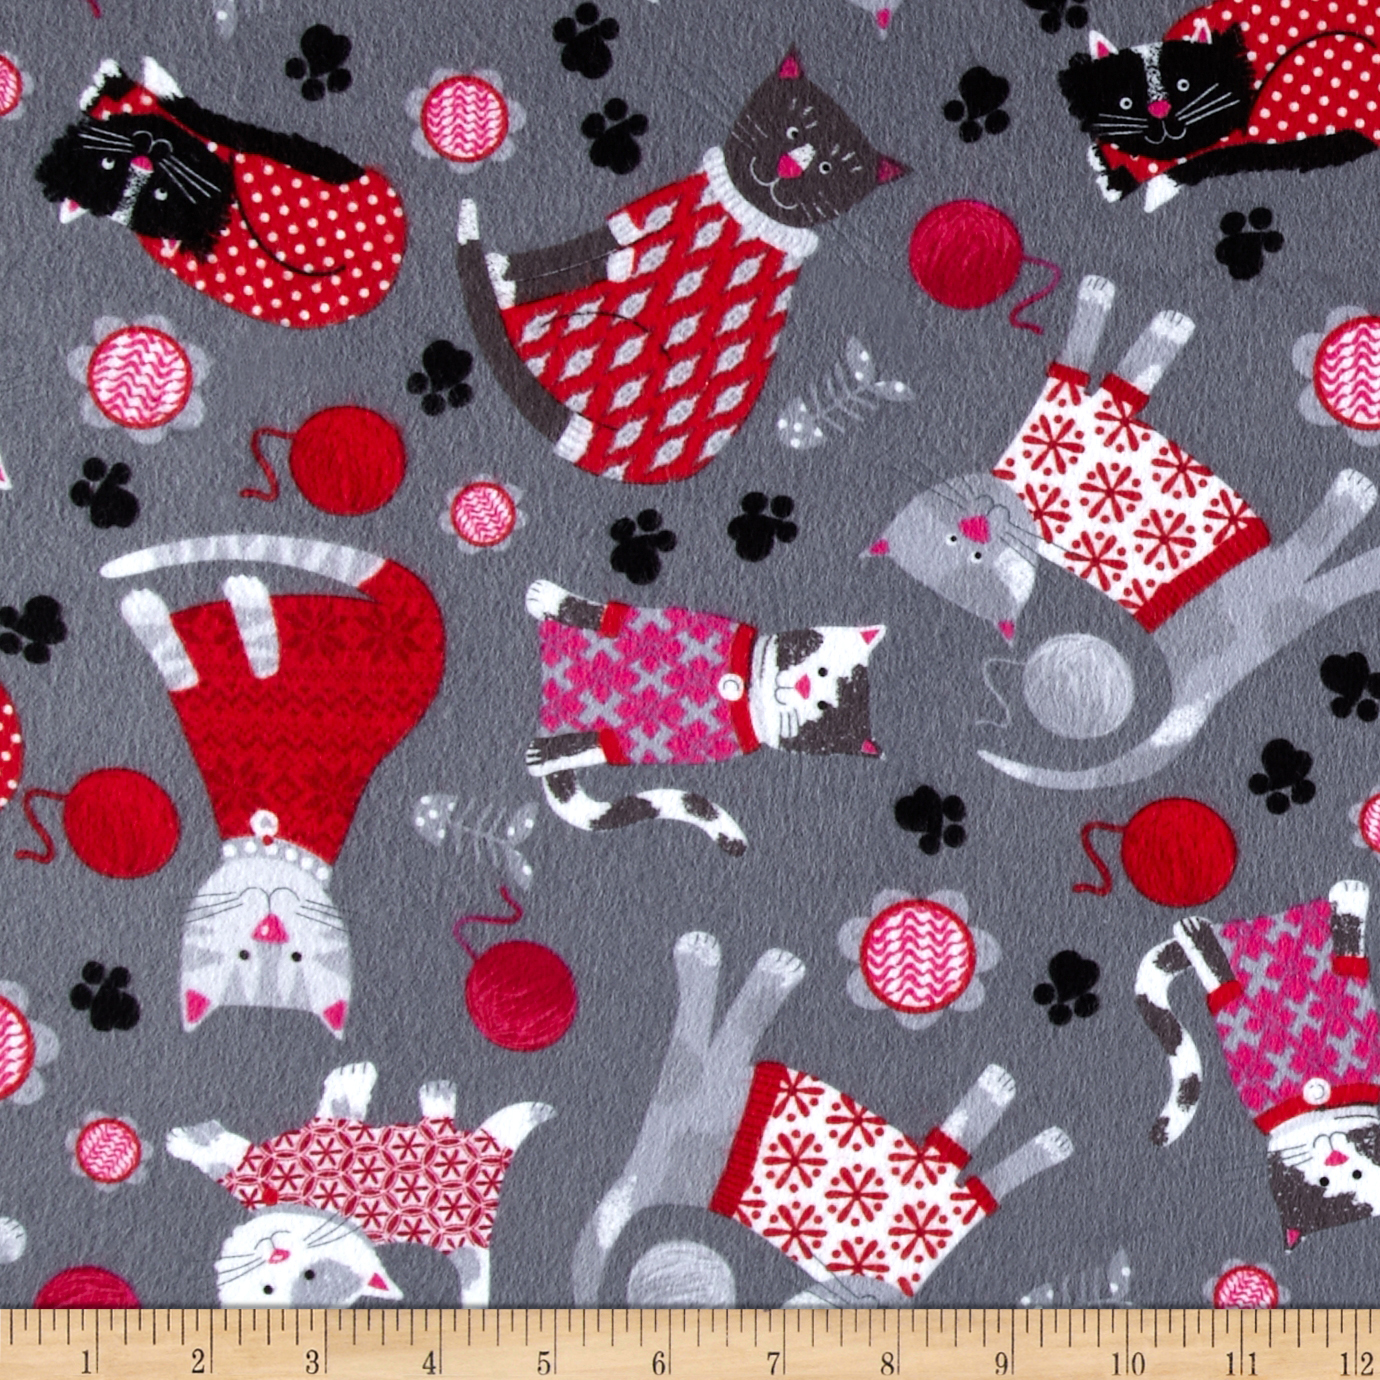 Kanvas Knitty Kitty Flannel Cozy Cats Grey Fabric